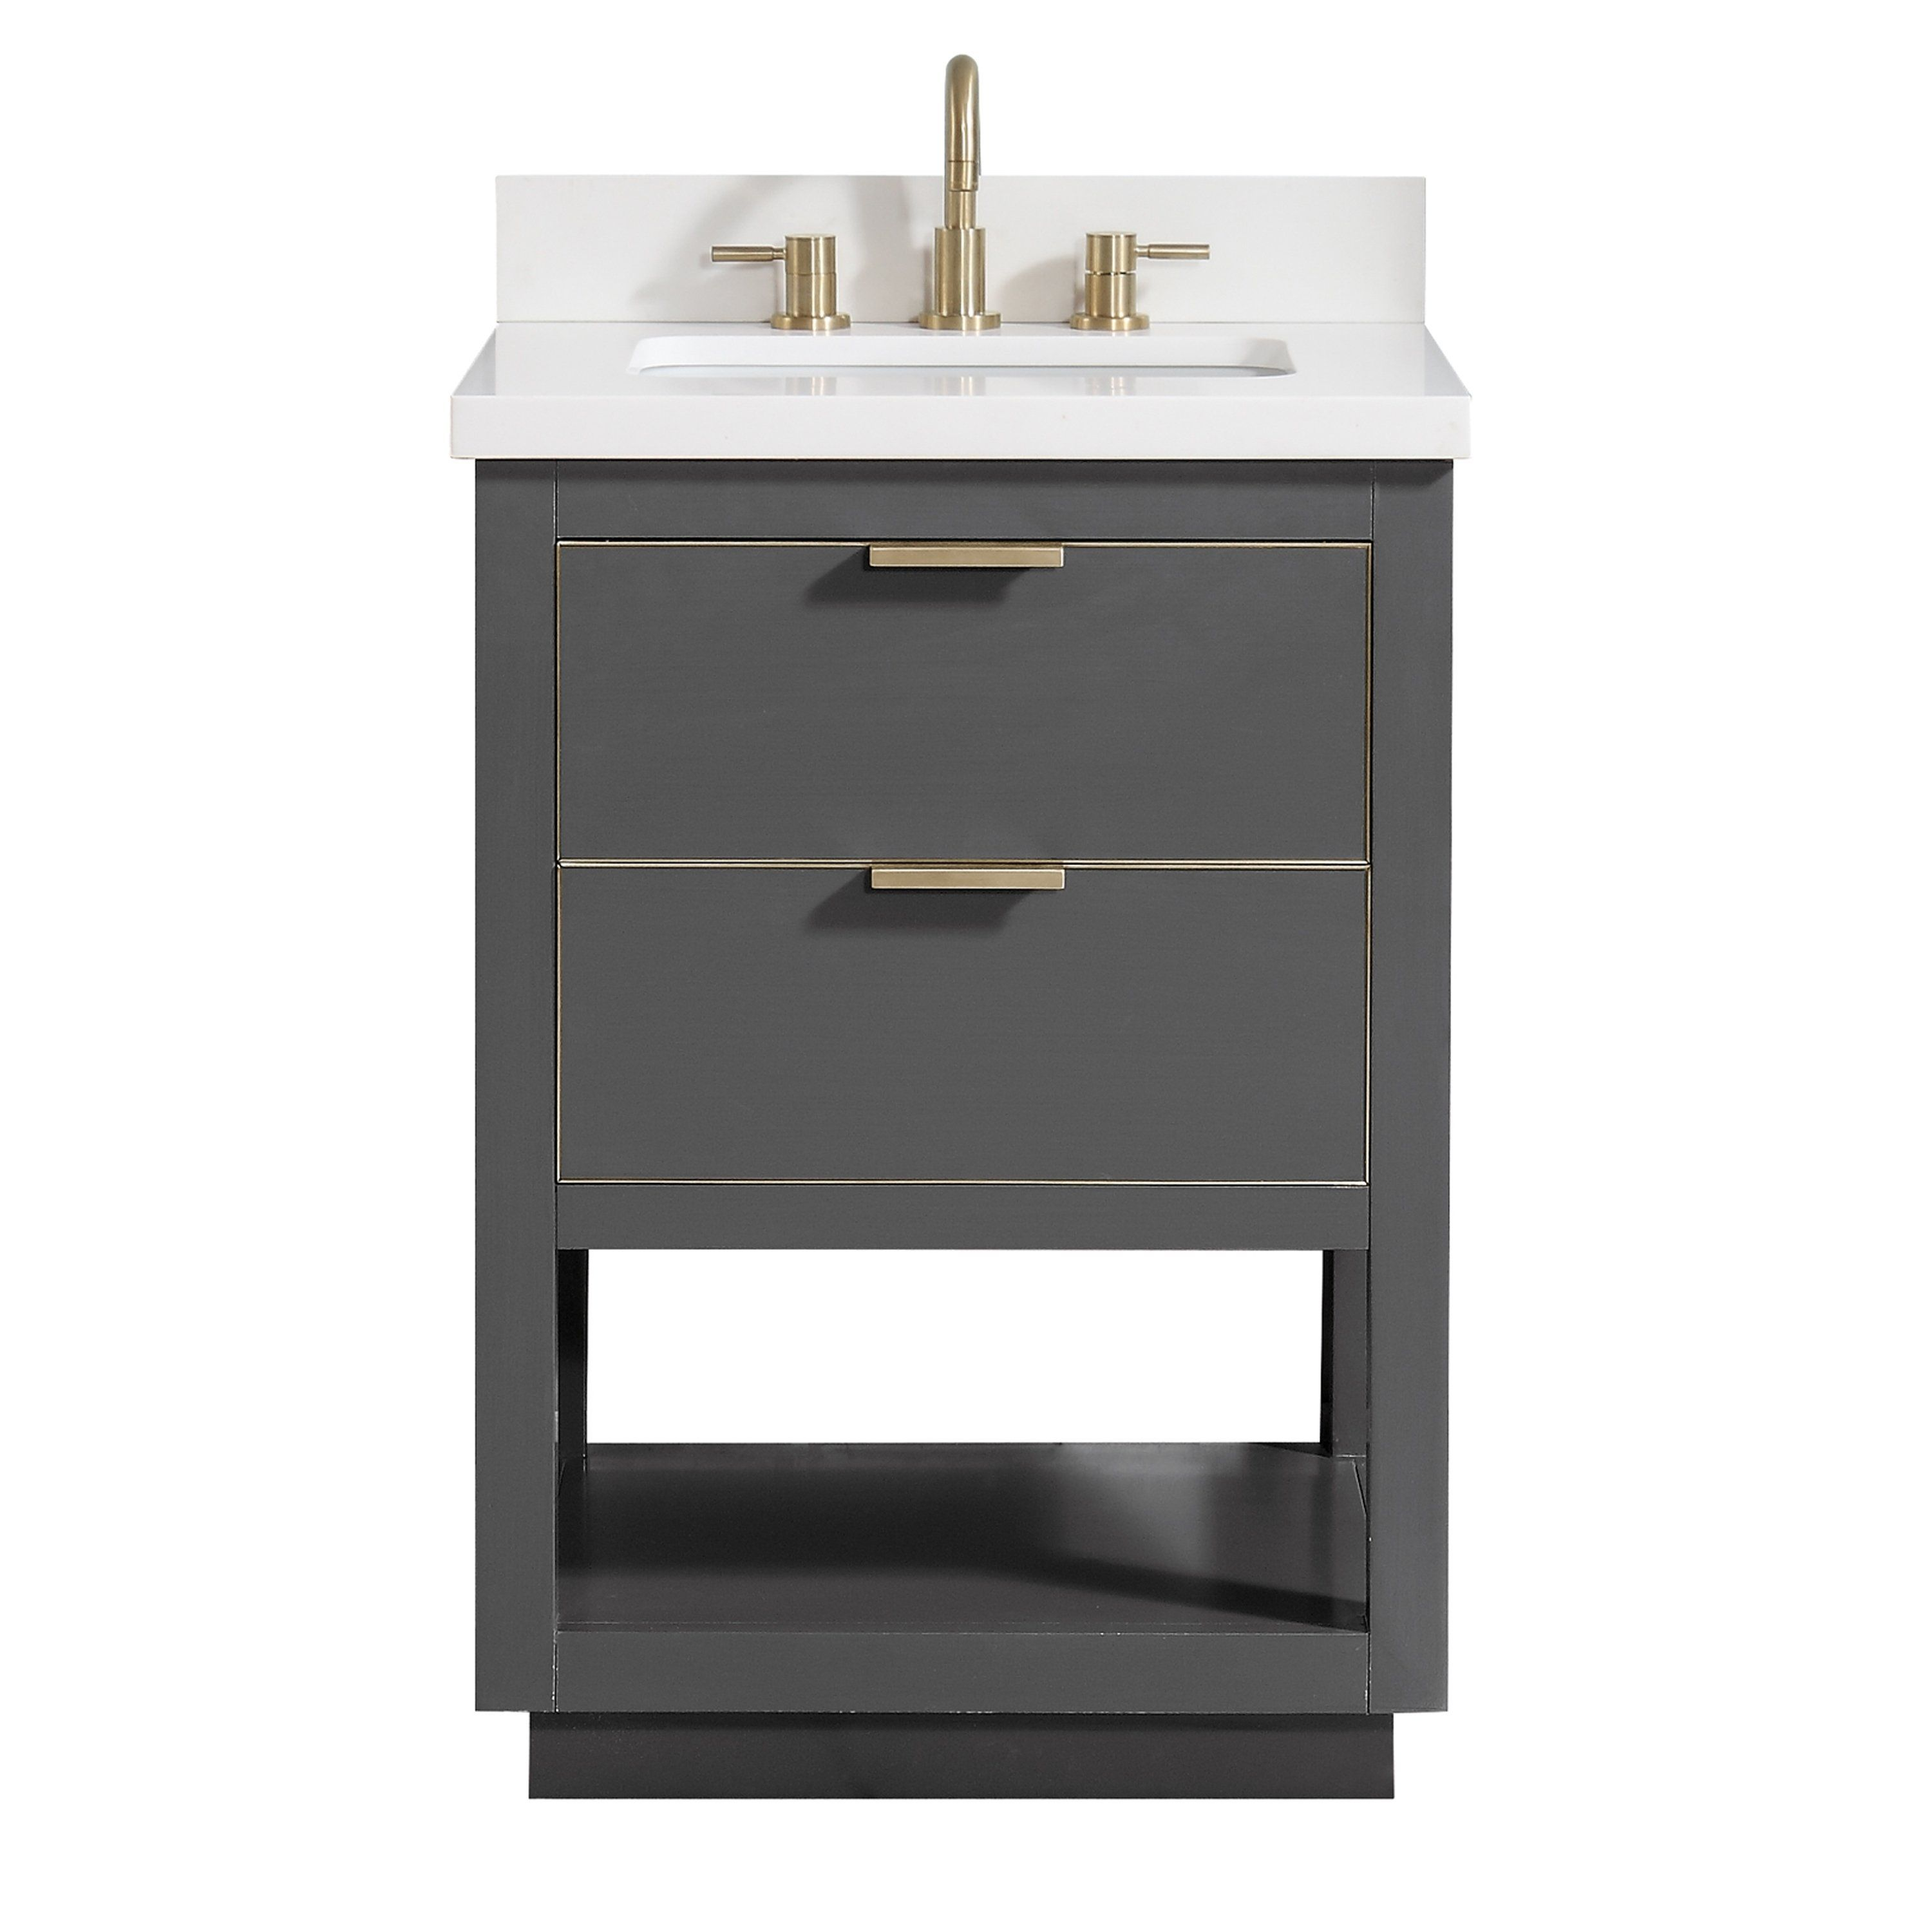 Avanity Allie 25 In Vanity Combo In Twilight Gray With Gold Trim